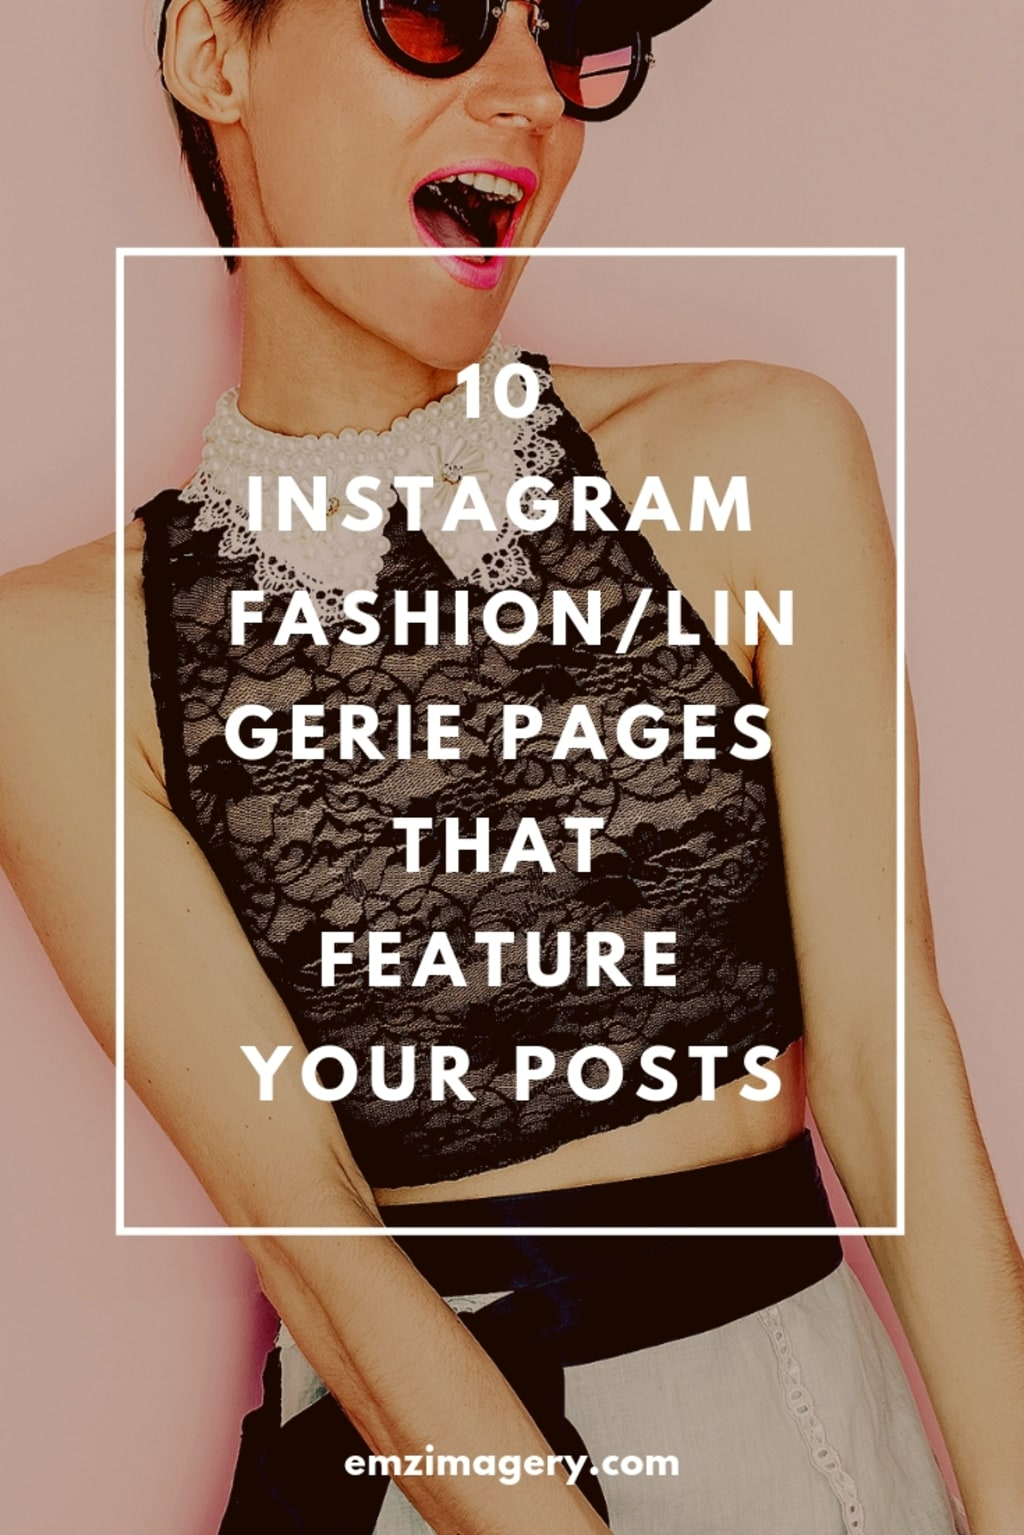 10 Instagram Fashion/Lingerie Pages That Feature Your Posts